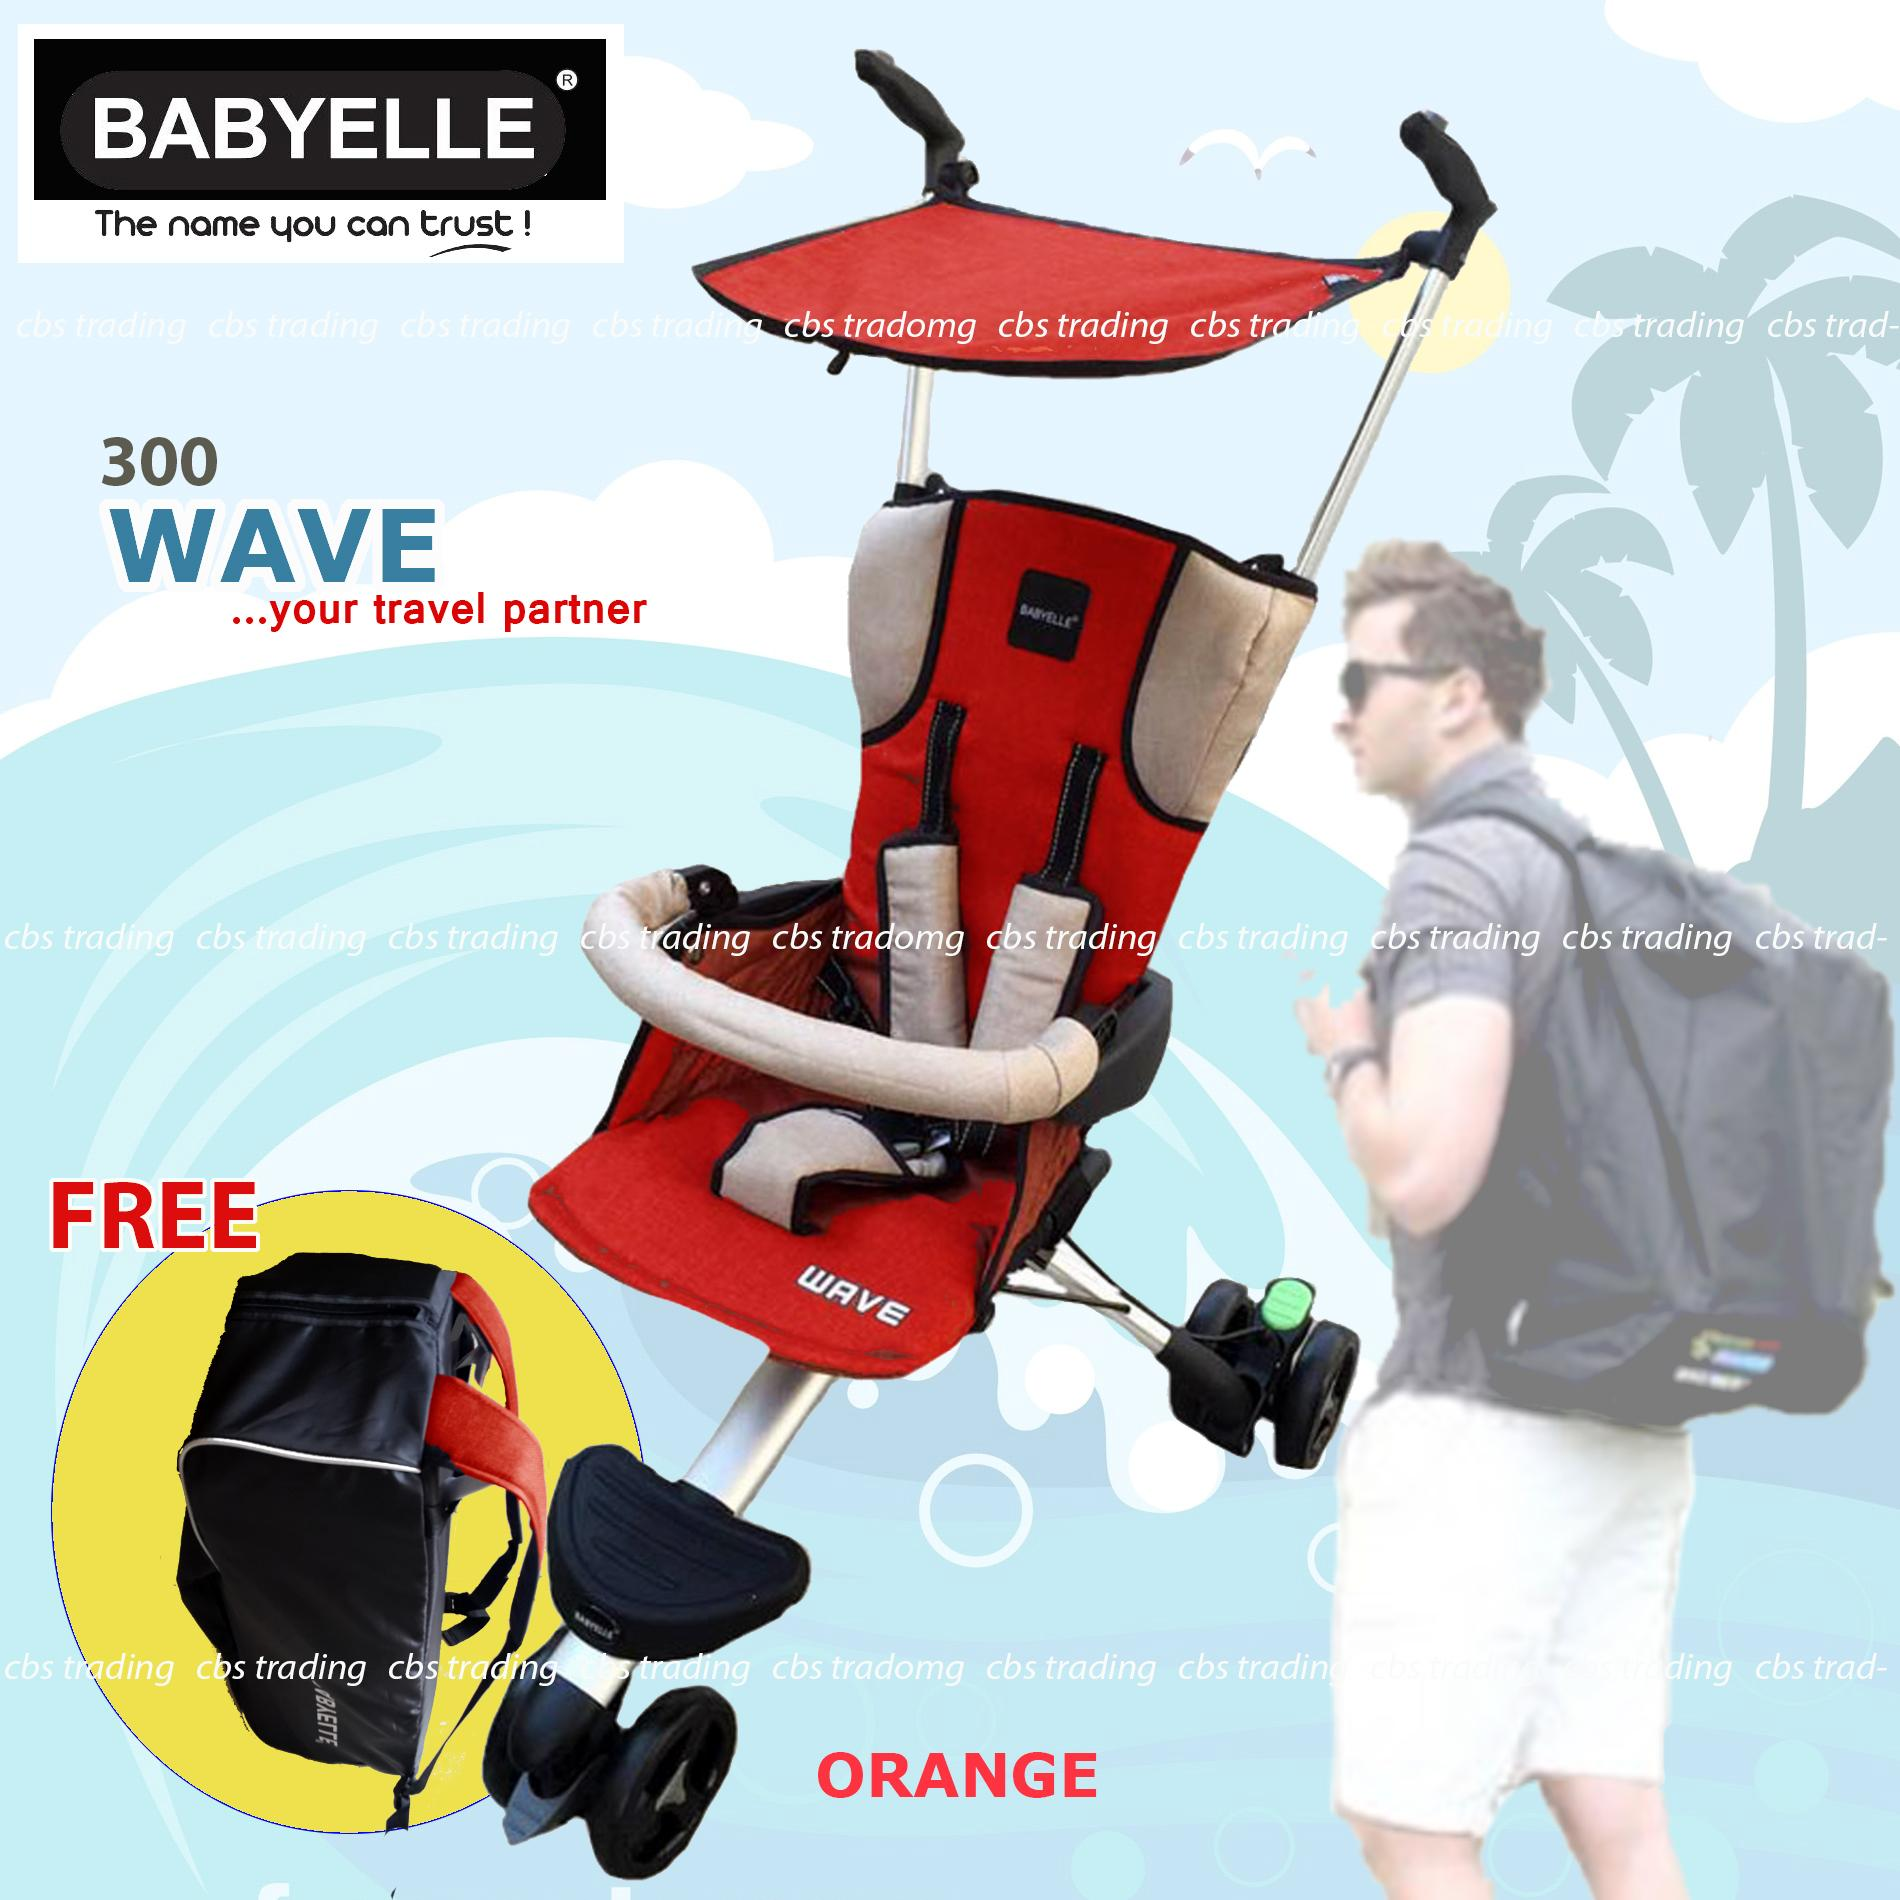 Babyelle Travelling Stroller NEW Wave With Bag - Kereta Dorong Bayi Buggy - Orange